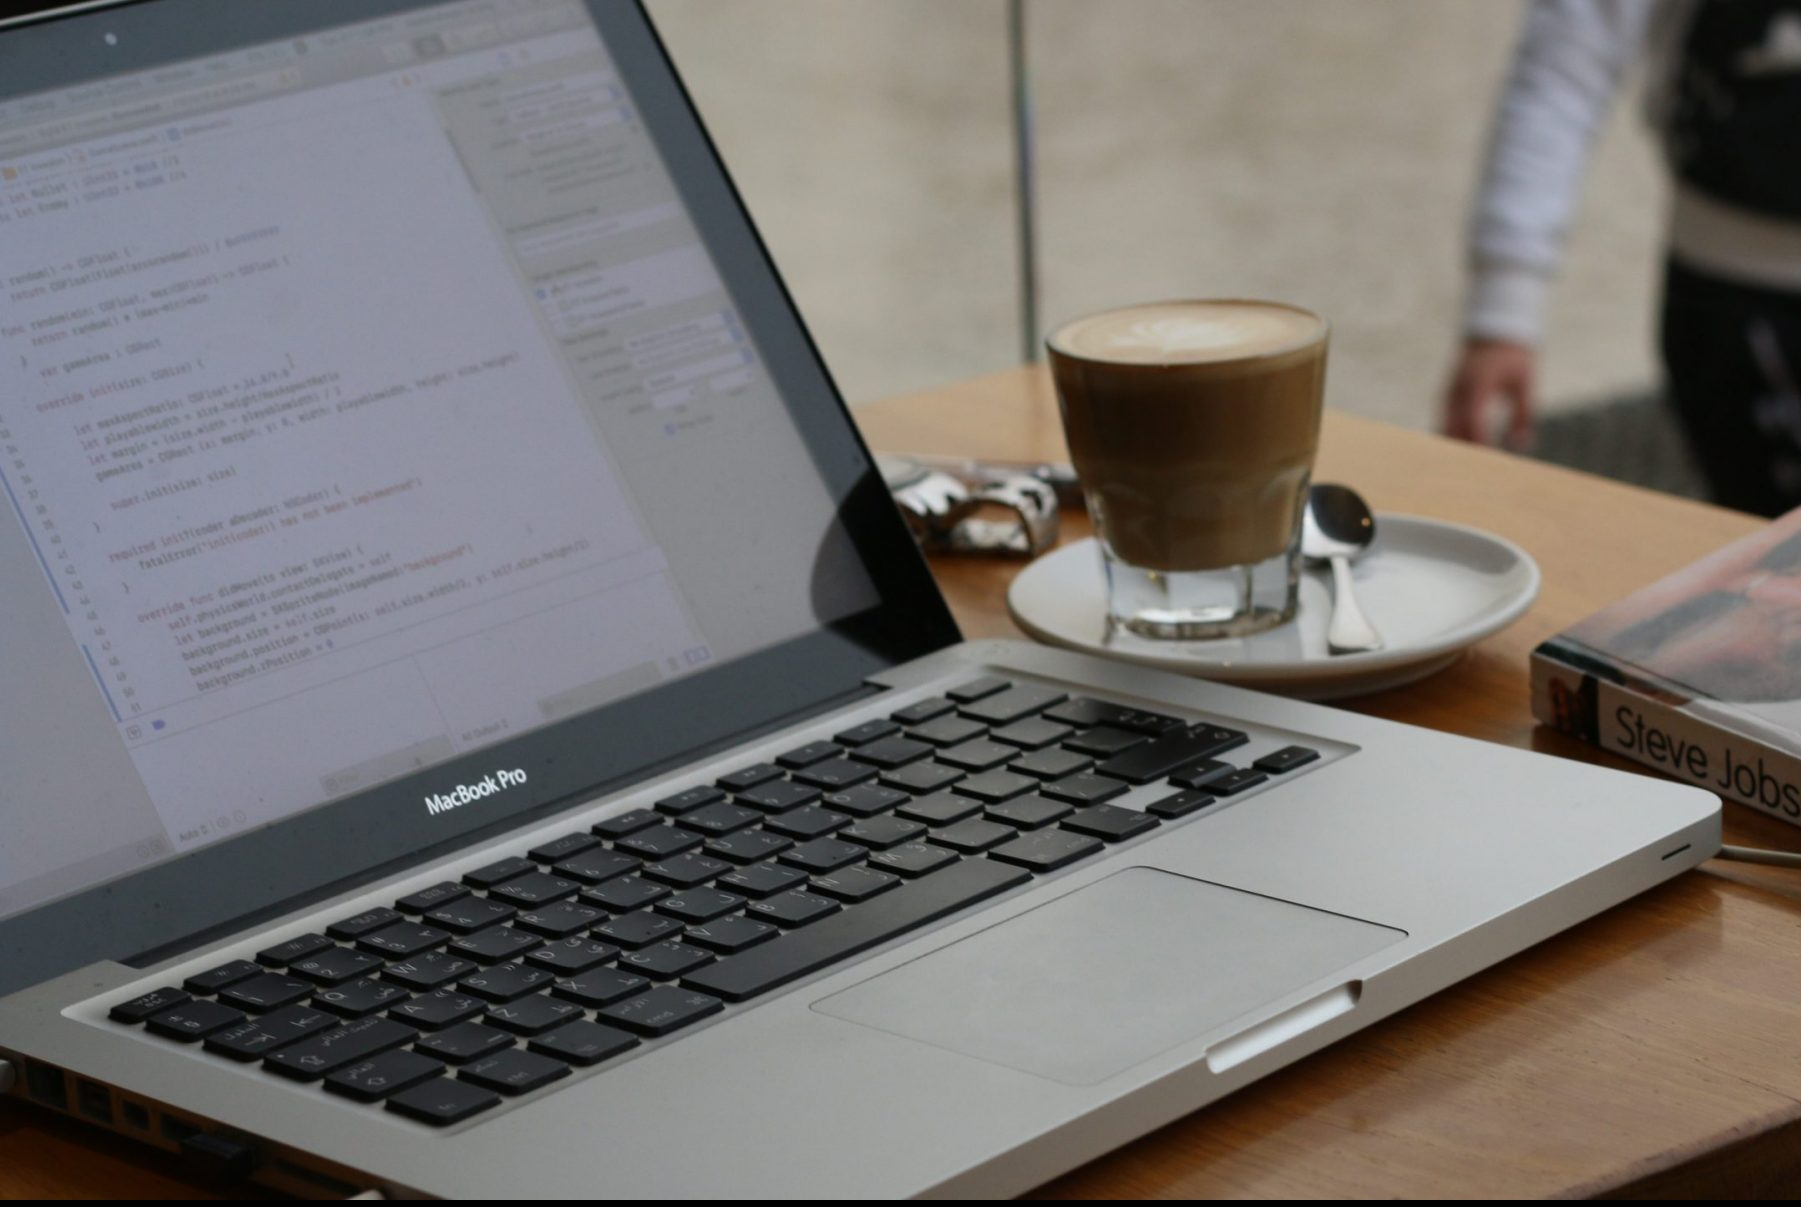 In an article about improving English grades, a computer with a cup of coffee next to it